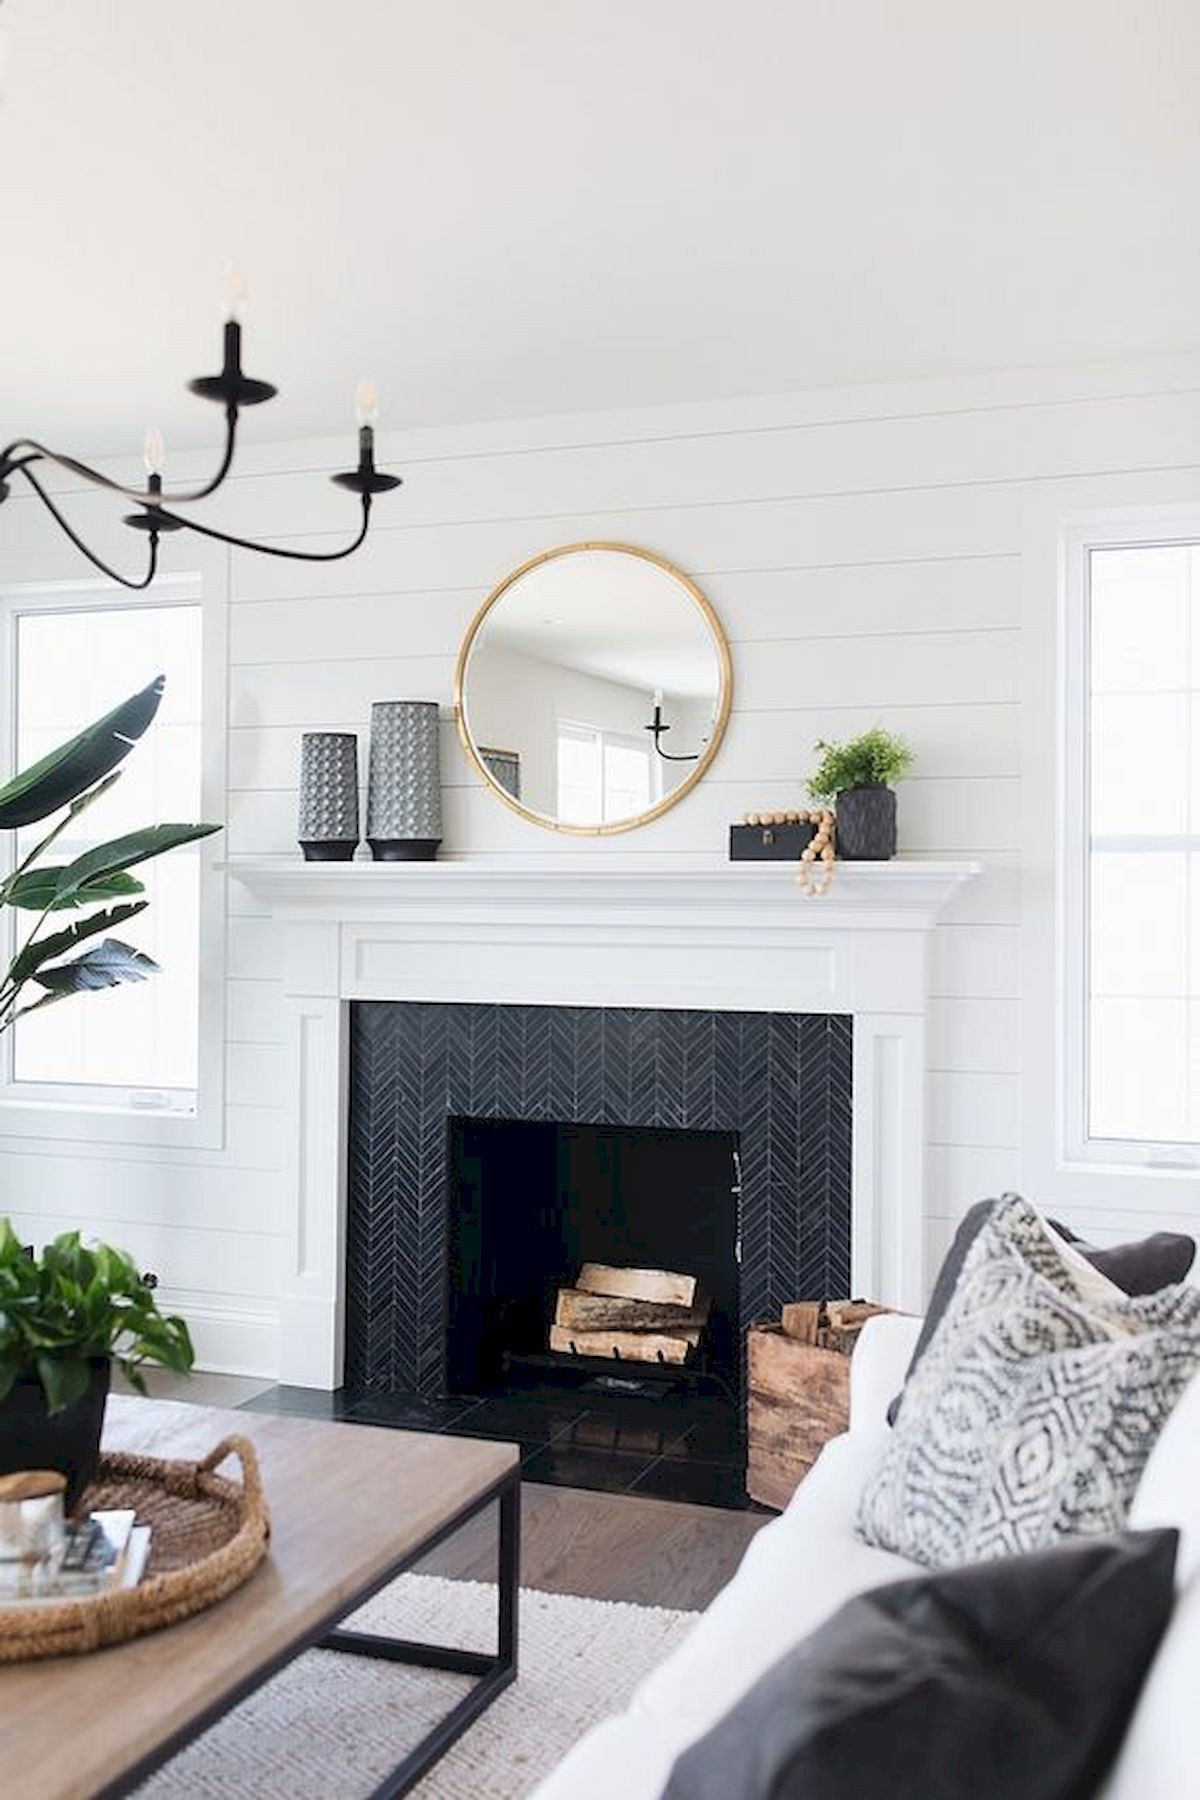 40 Best Modern Farmhouse Fireplace Mantel Decor Ideas 29 Farm House Living Room Fireplace Mantel Designs Farmhouse Fireplace Mantels